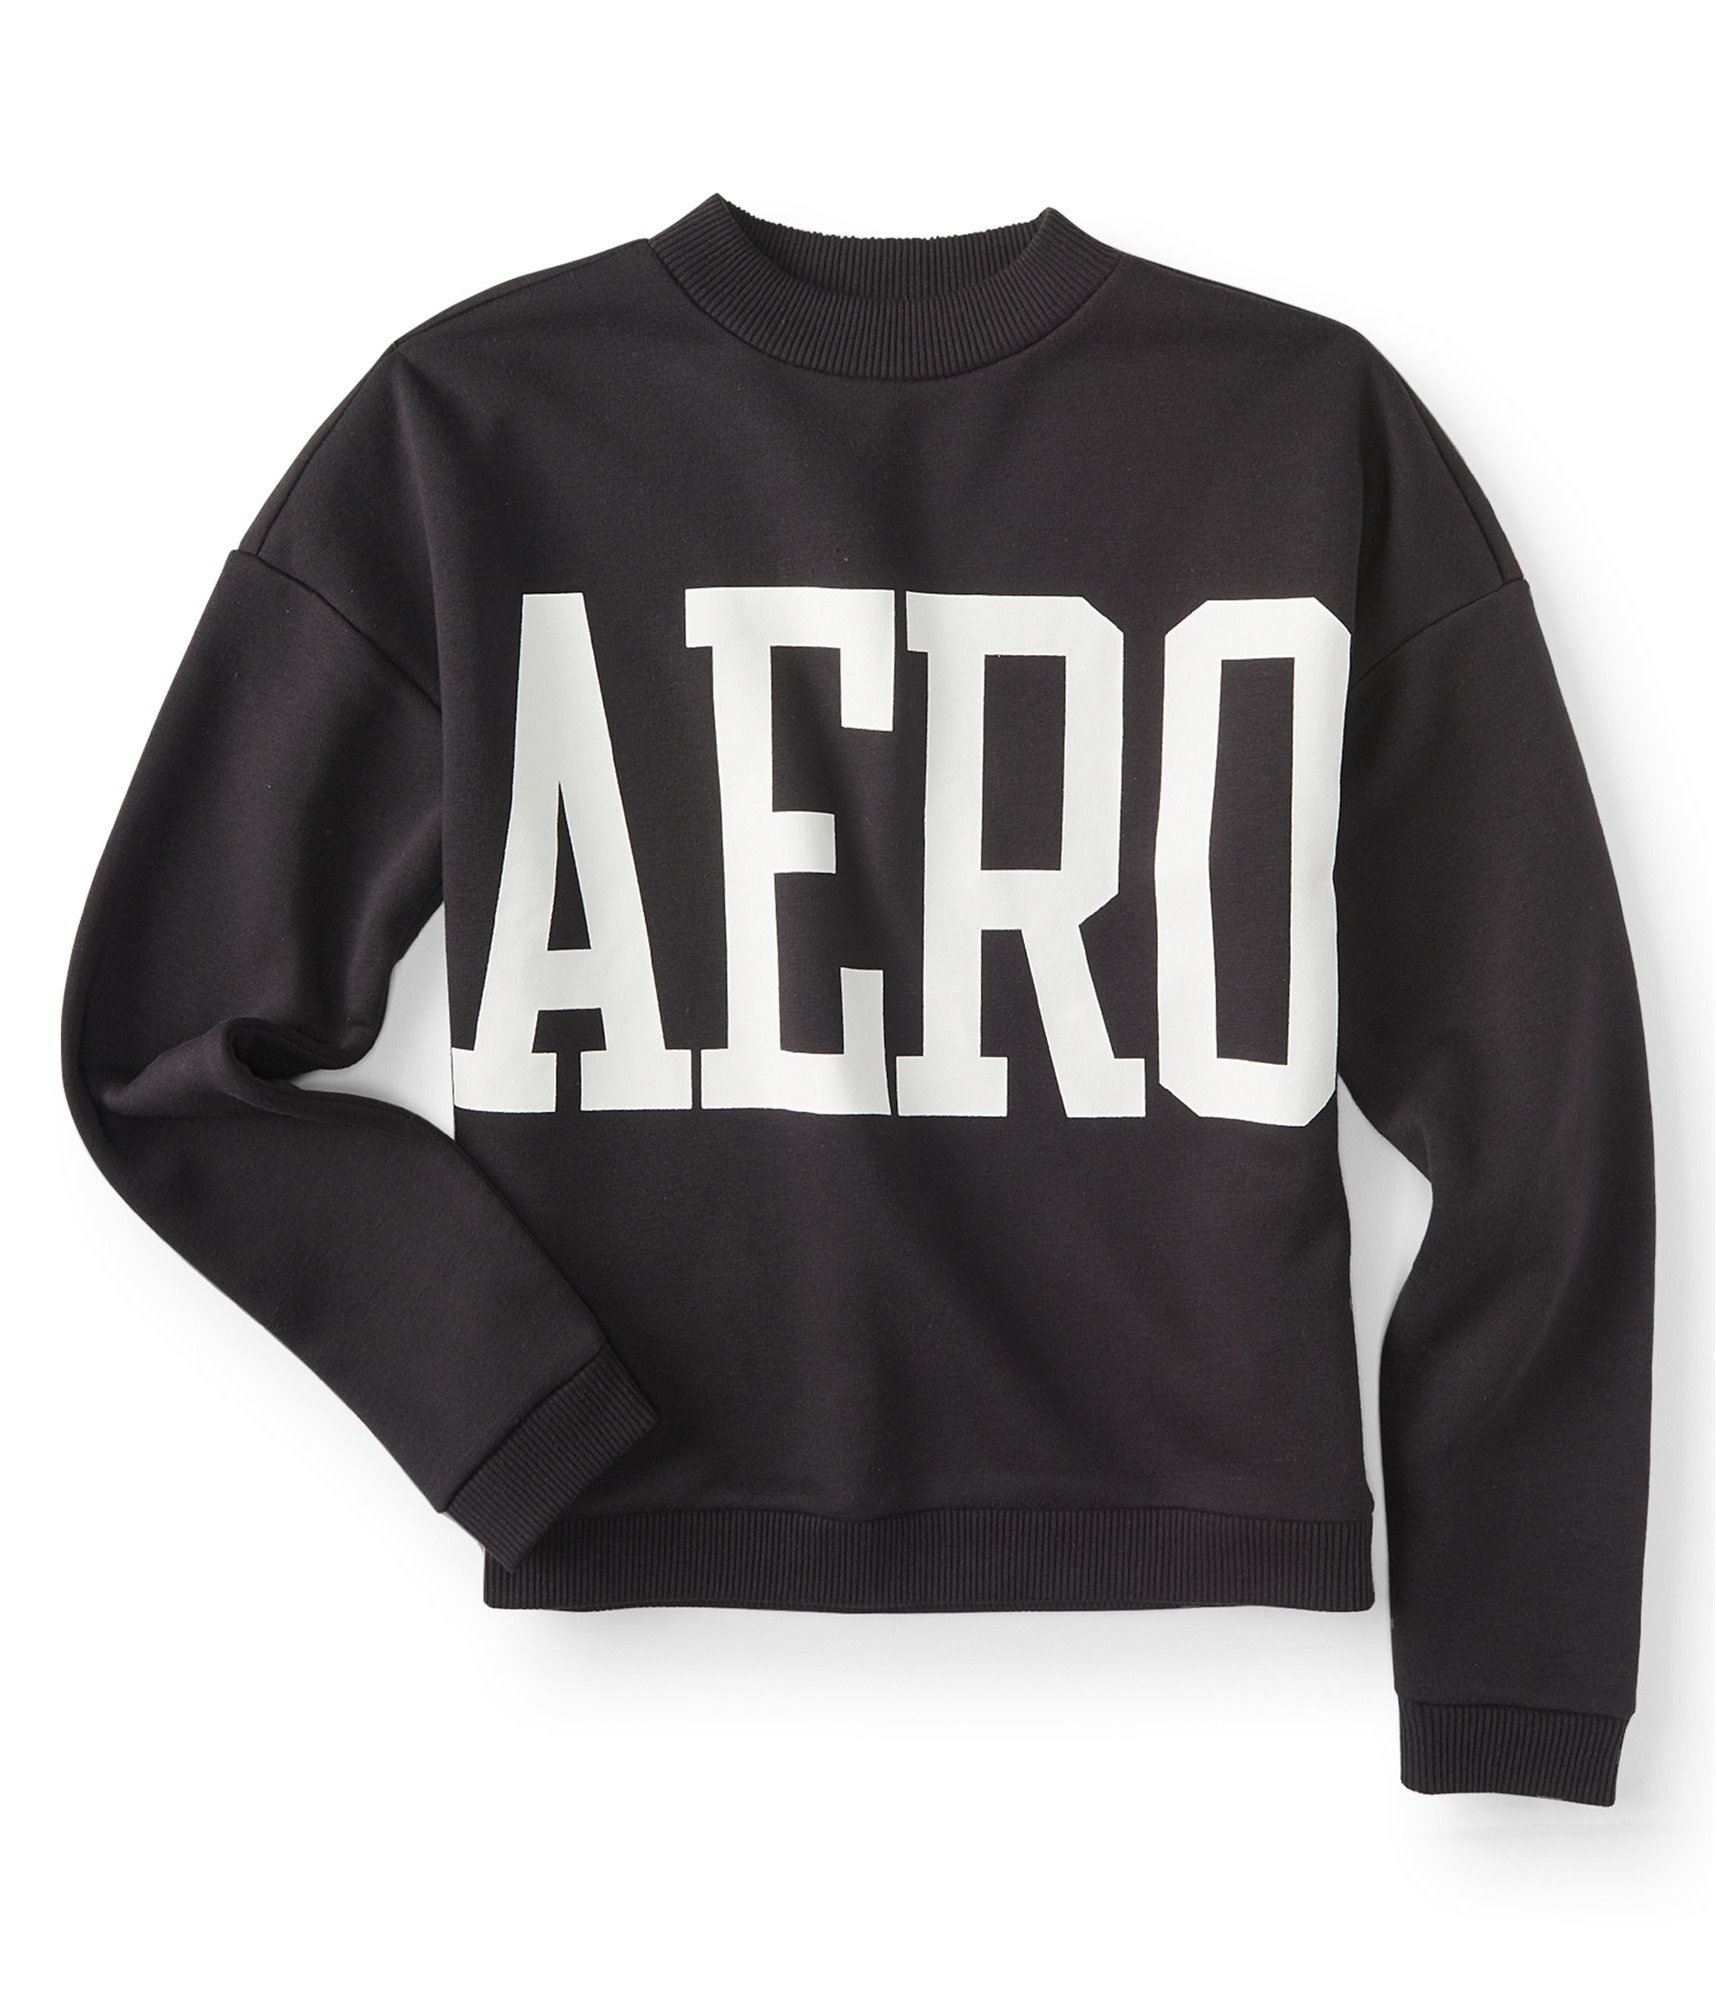 Aeropostale Womens Logo Sweatshirt Black L - Juniors by Aeropostale